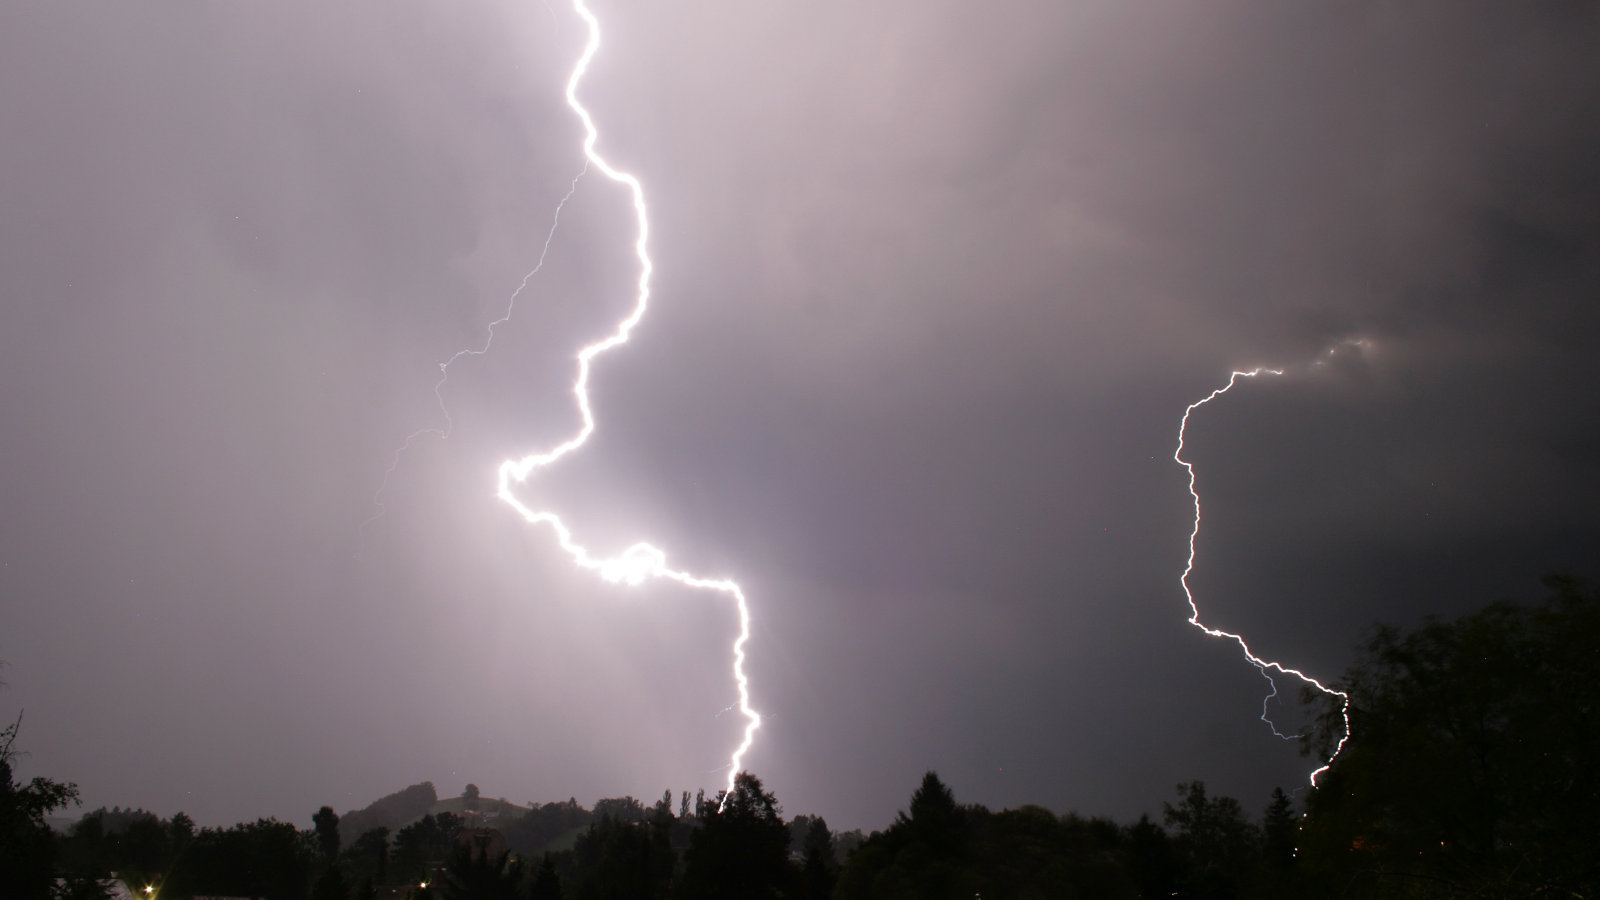 Click here to read How We'll Control Lightning with Laser Beams